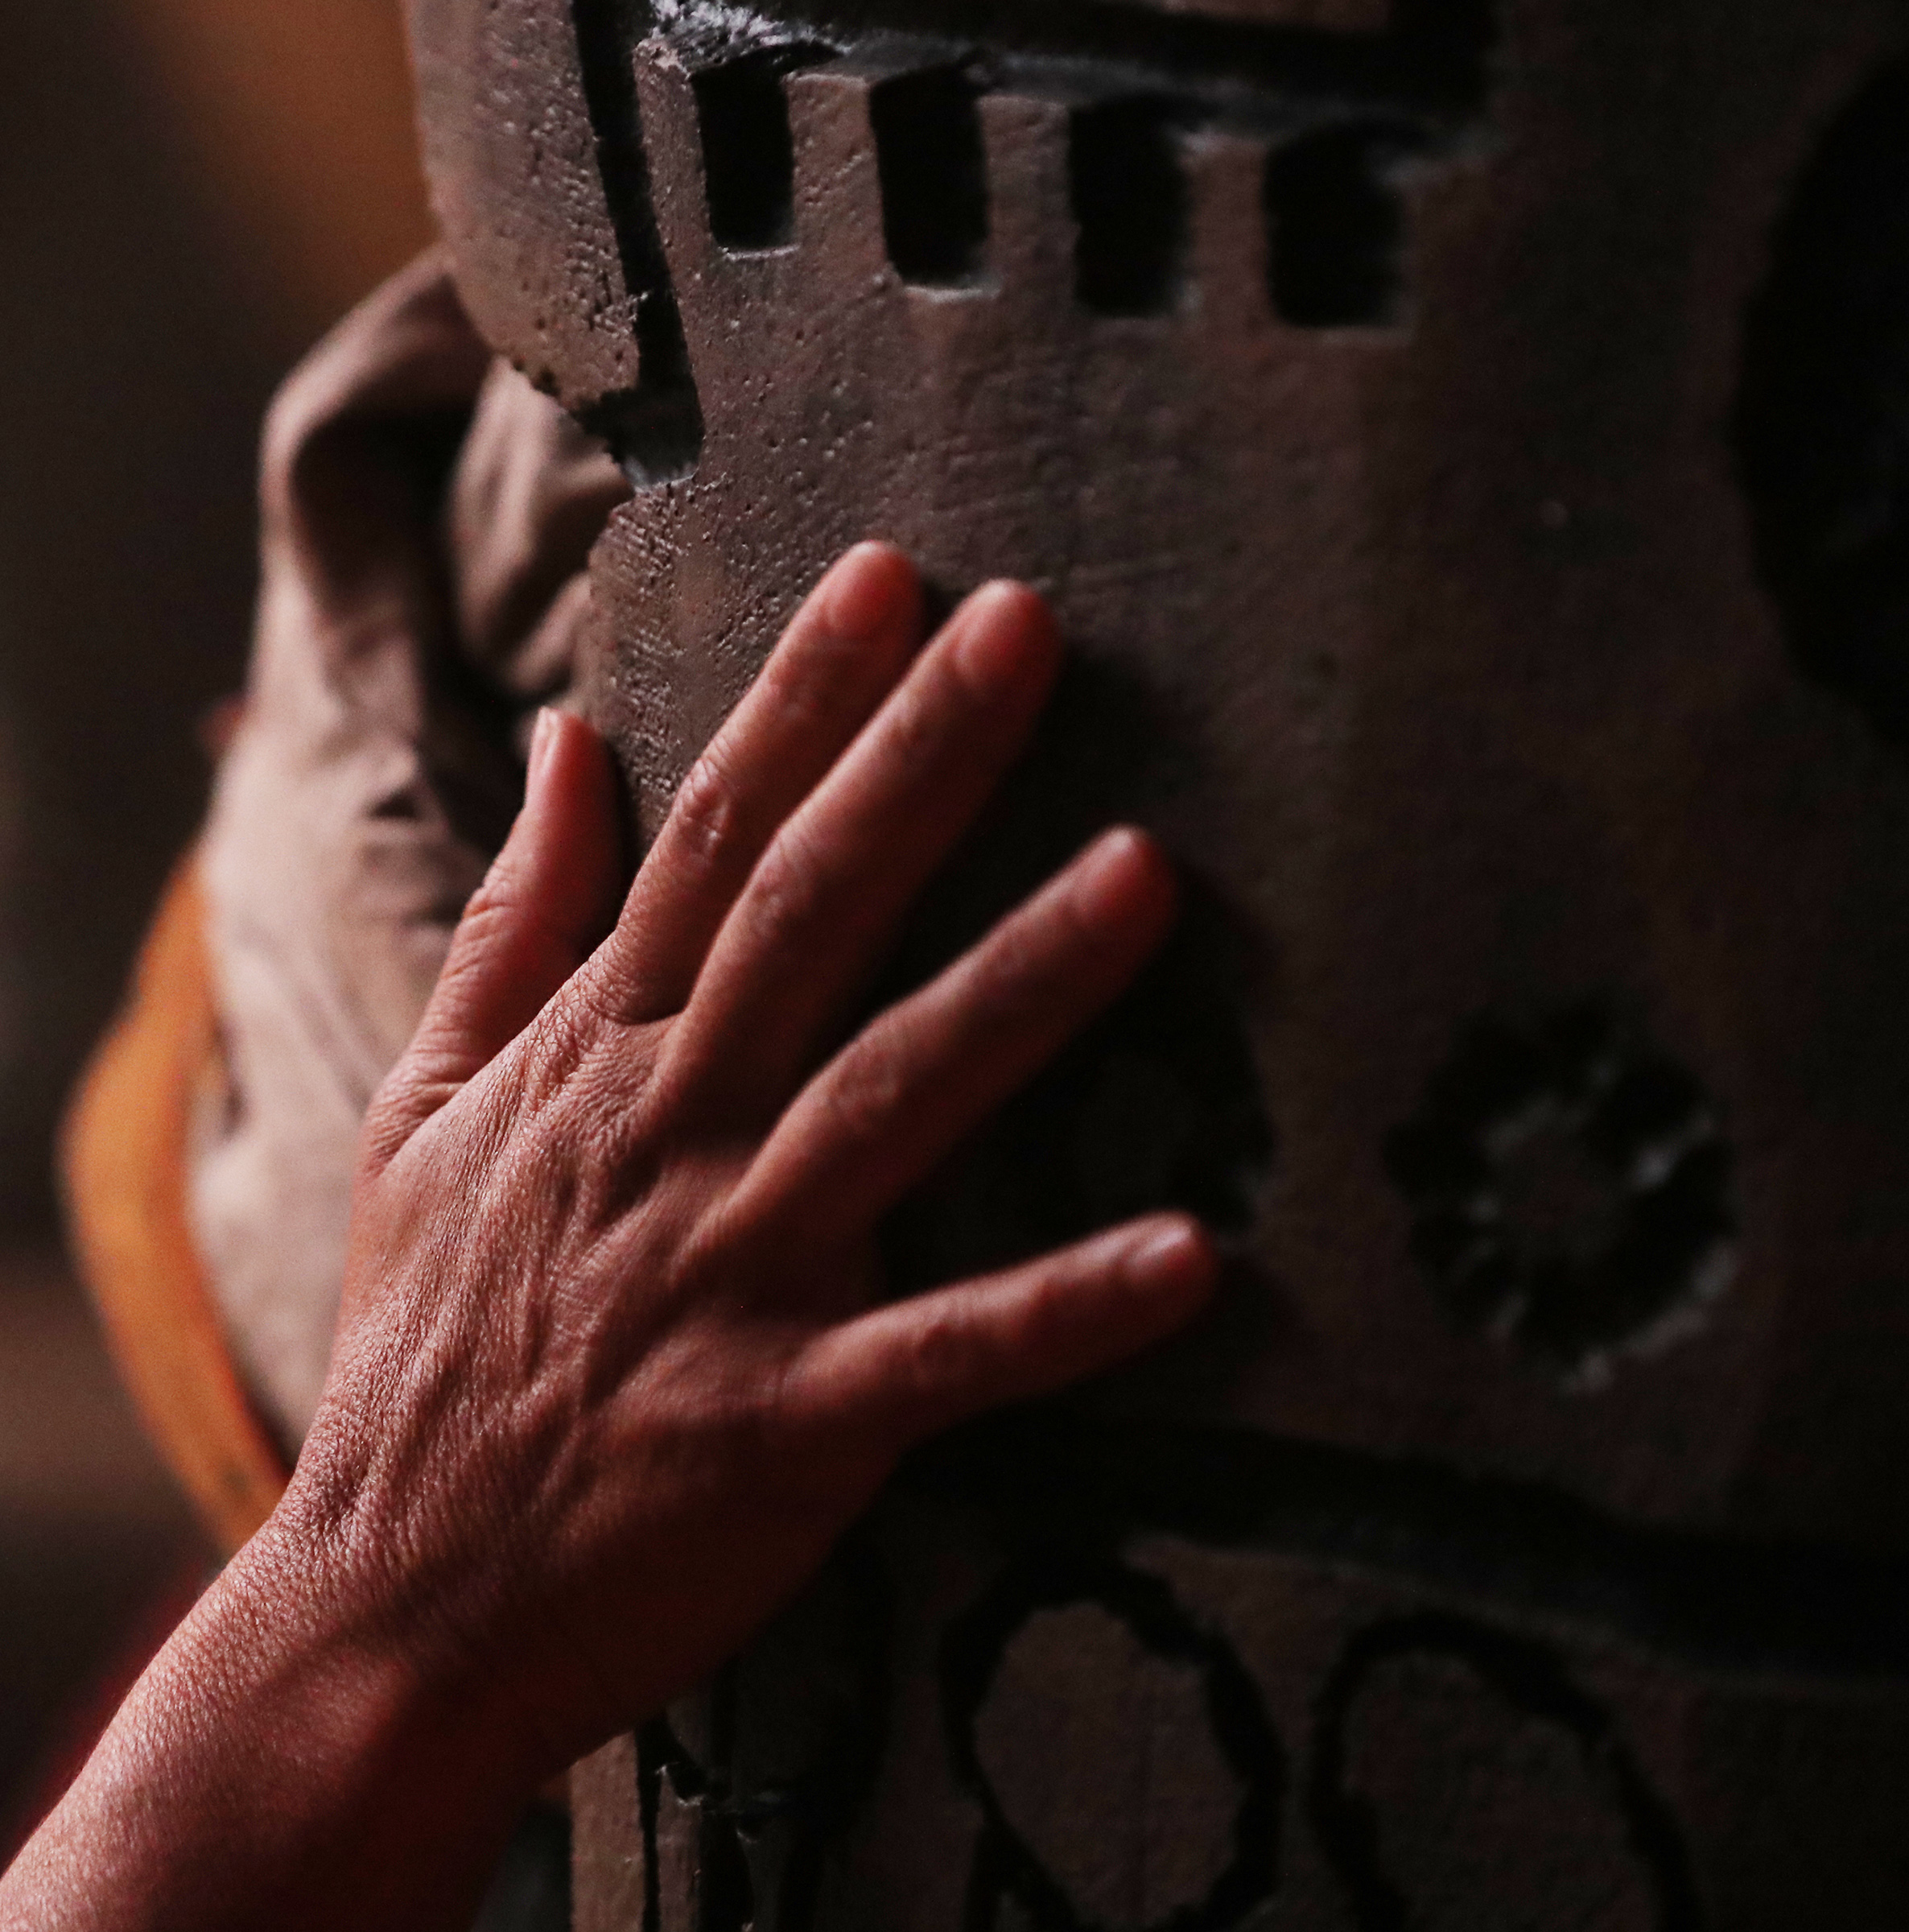 A cast member places her hand on a column in King Noah's court during filming of the Book of Mormon video series in Provo, Utah, at the Motion Picture Studio on Tuesday, Sept. 3, 2019.